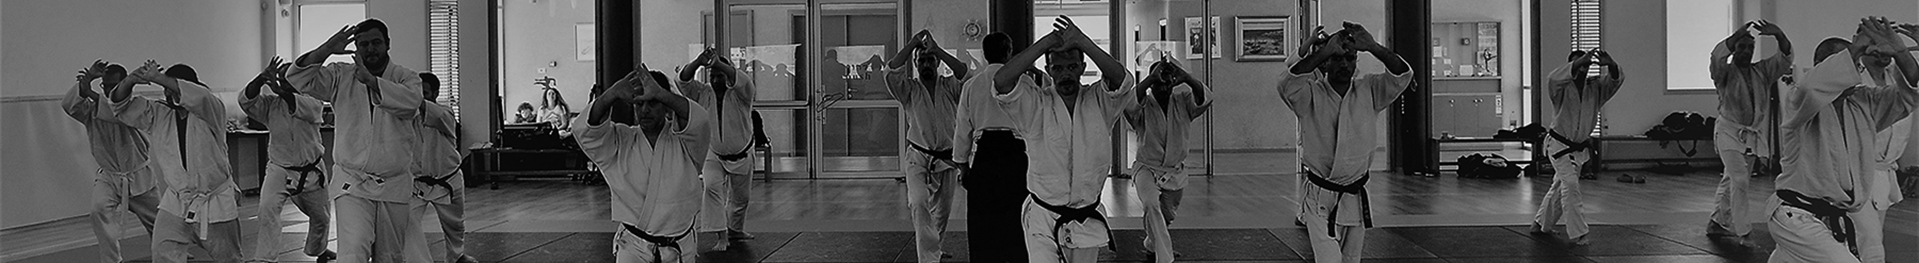 Aikido and the Way of Study – An article about the path I took to study some Aikido principles – by Gadi Shorr, 6th Dan Yoshinkan Aikido. Israel July 1994